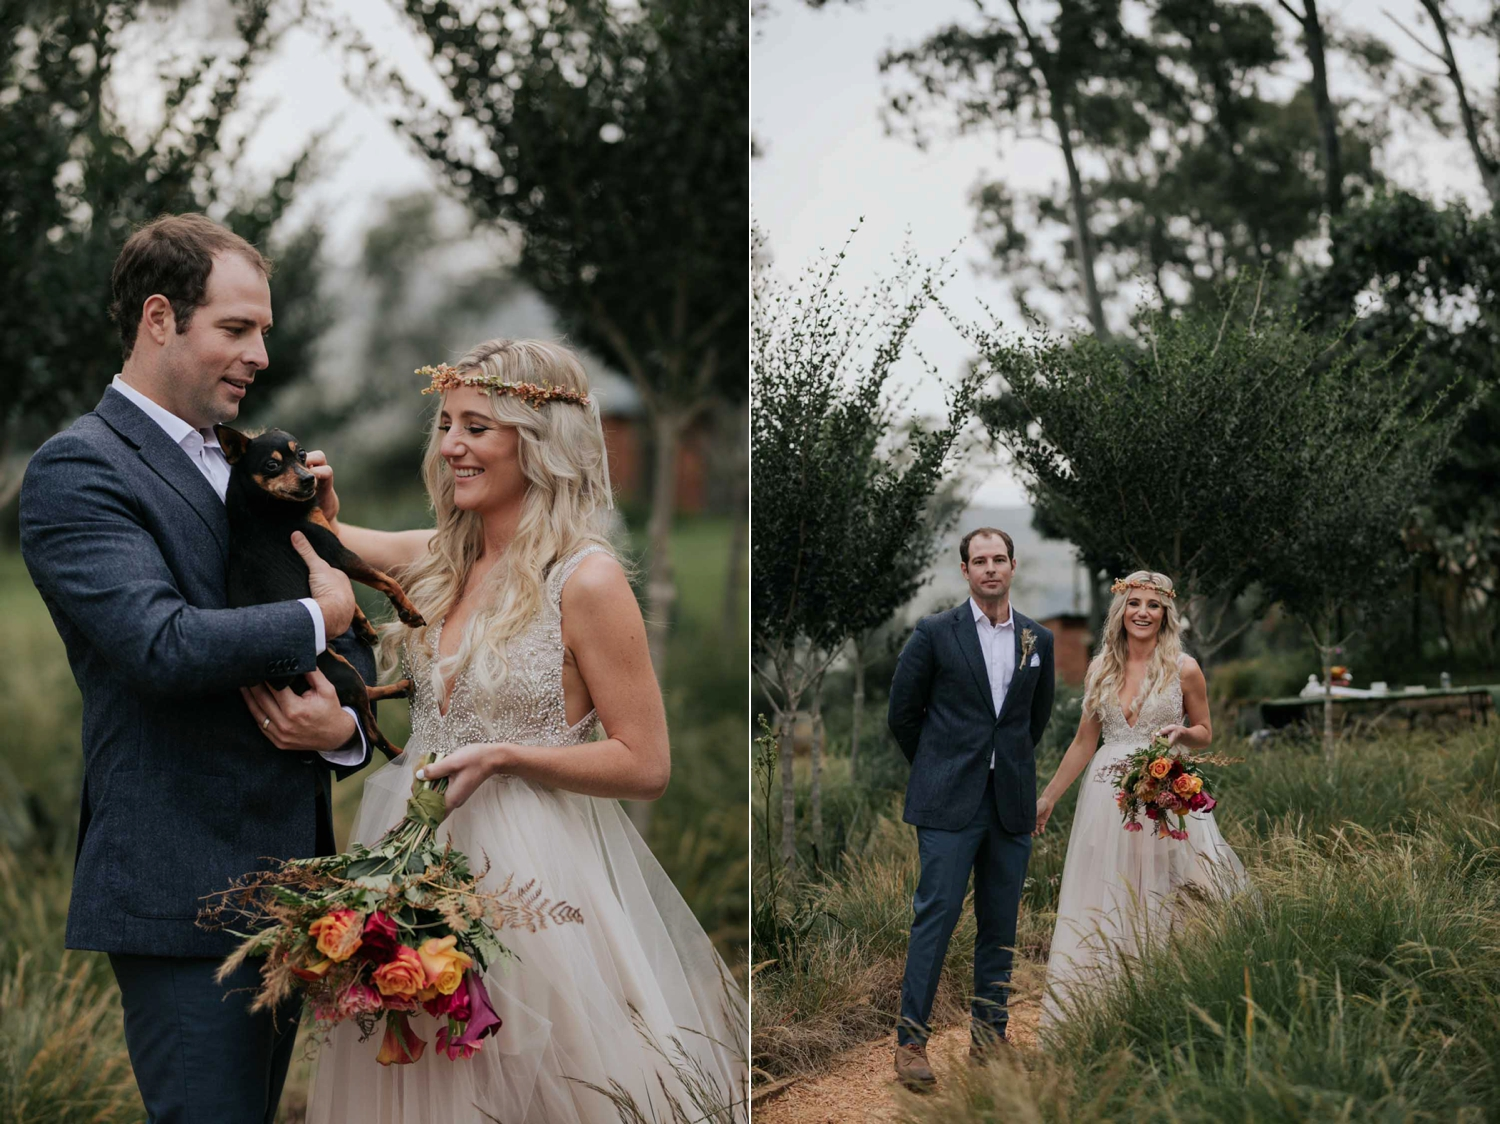 Bride and groom laughing holding their dog.